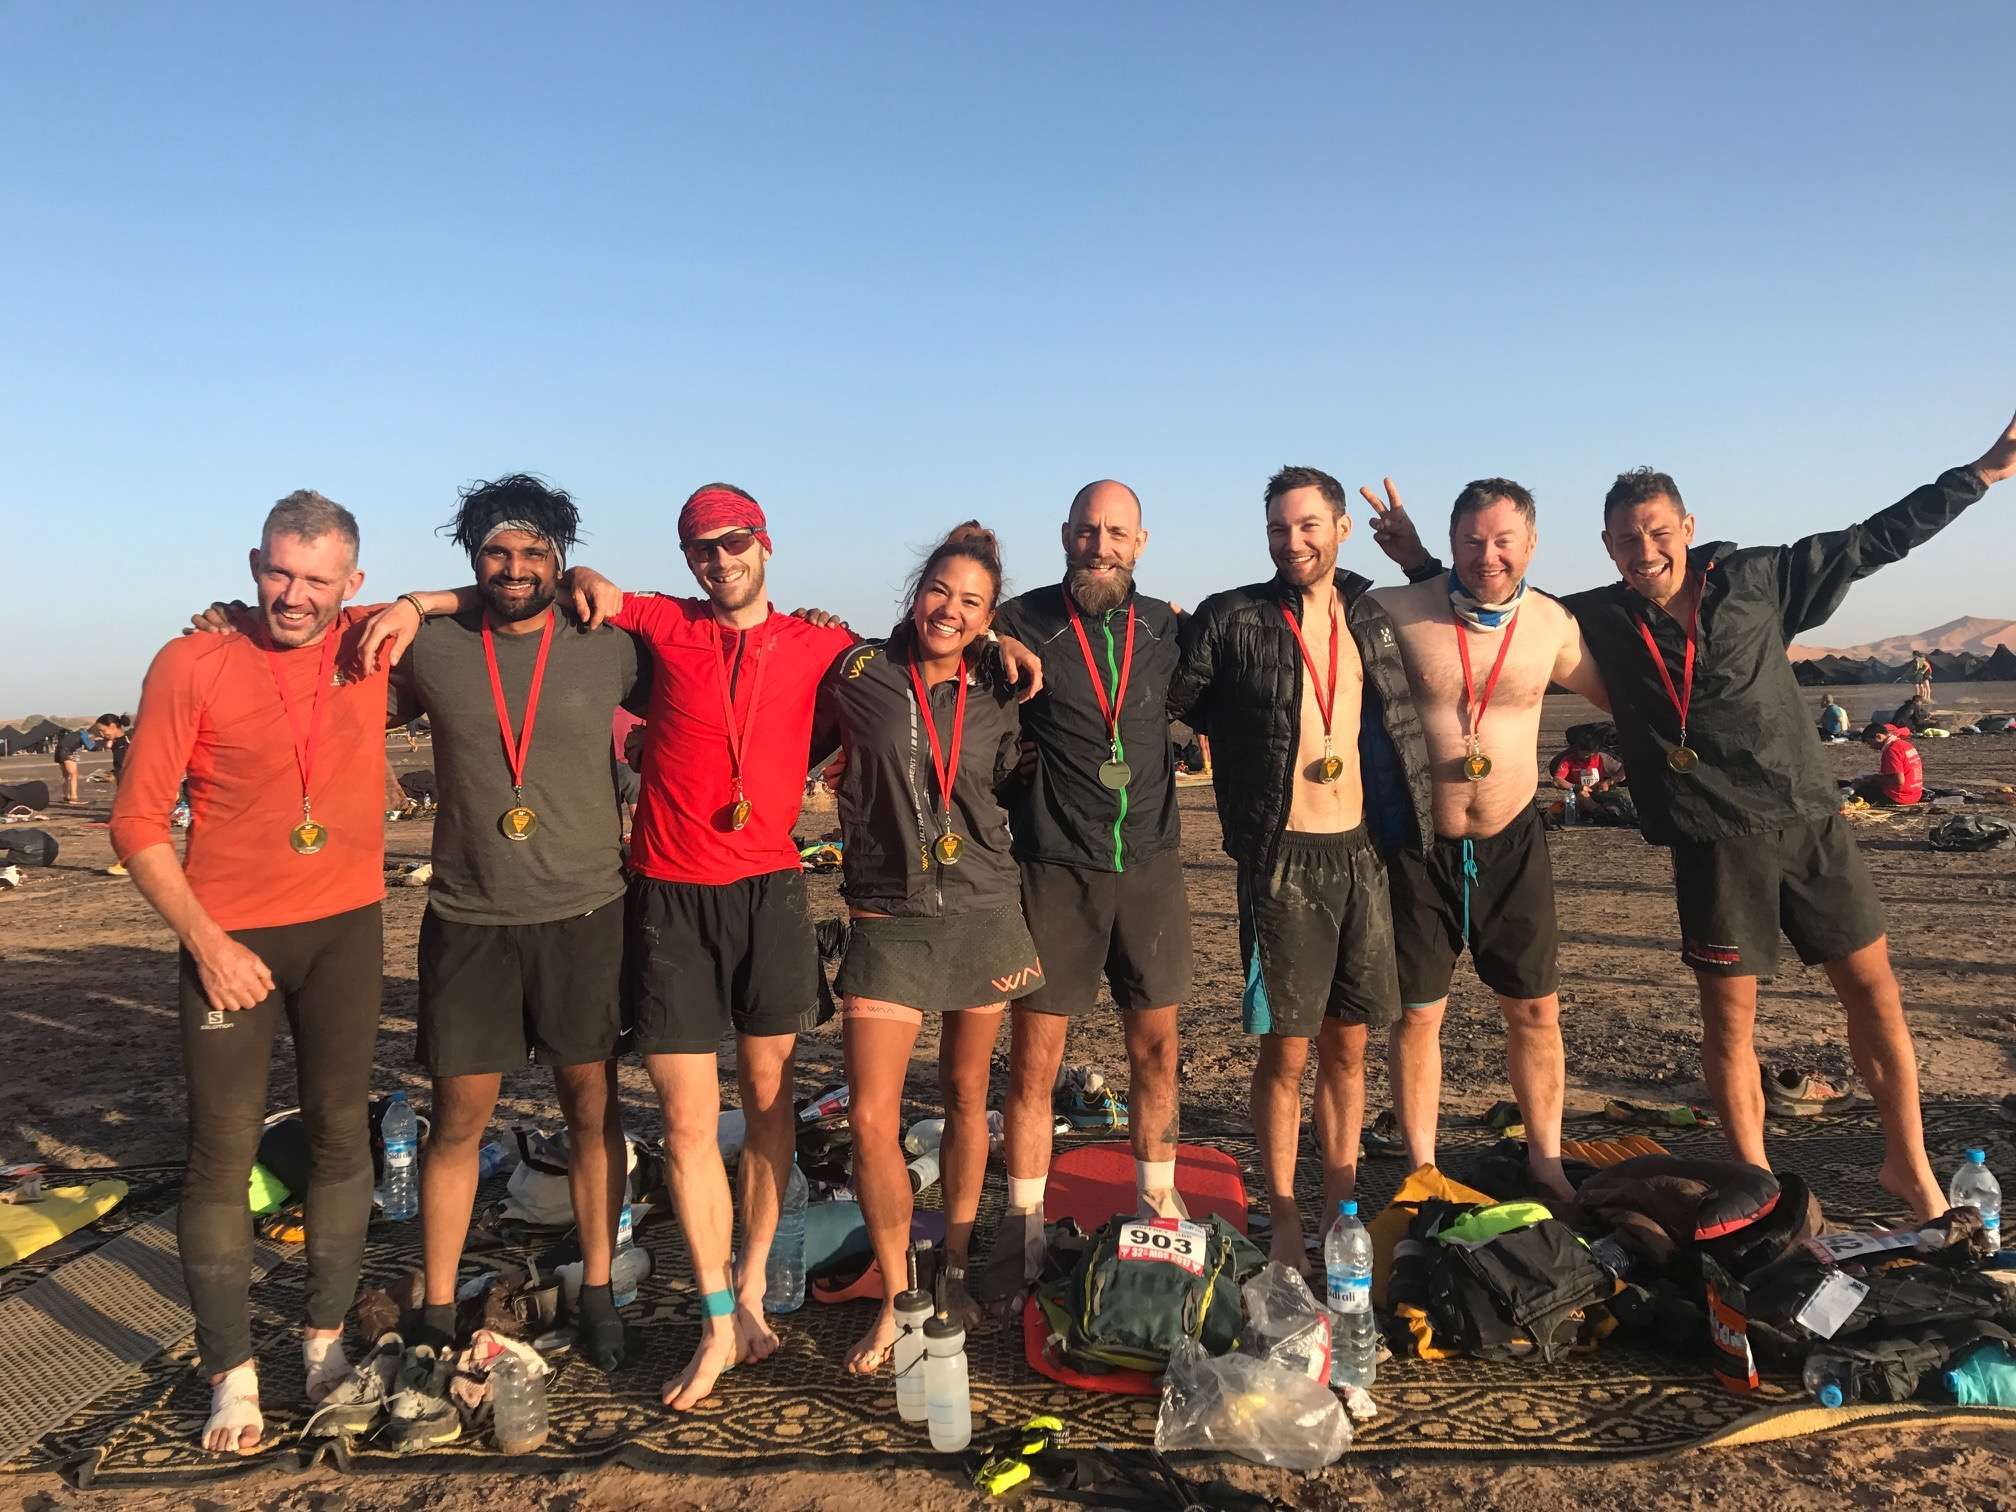 MdS 2017 inov-8 blog by Damian Hall. Credit Susie Chan (@Susie_Chan)_2